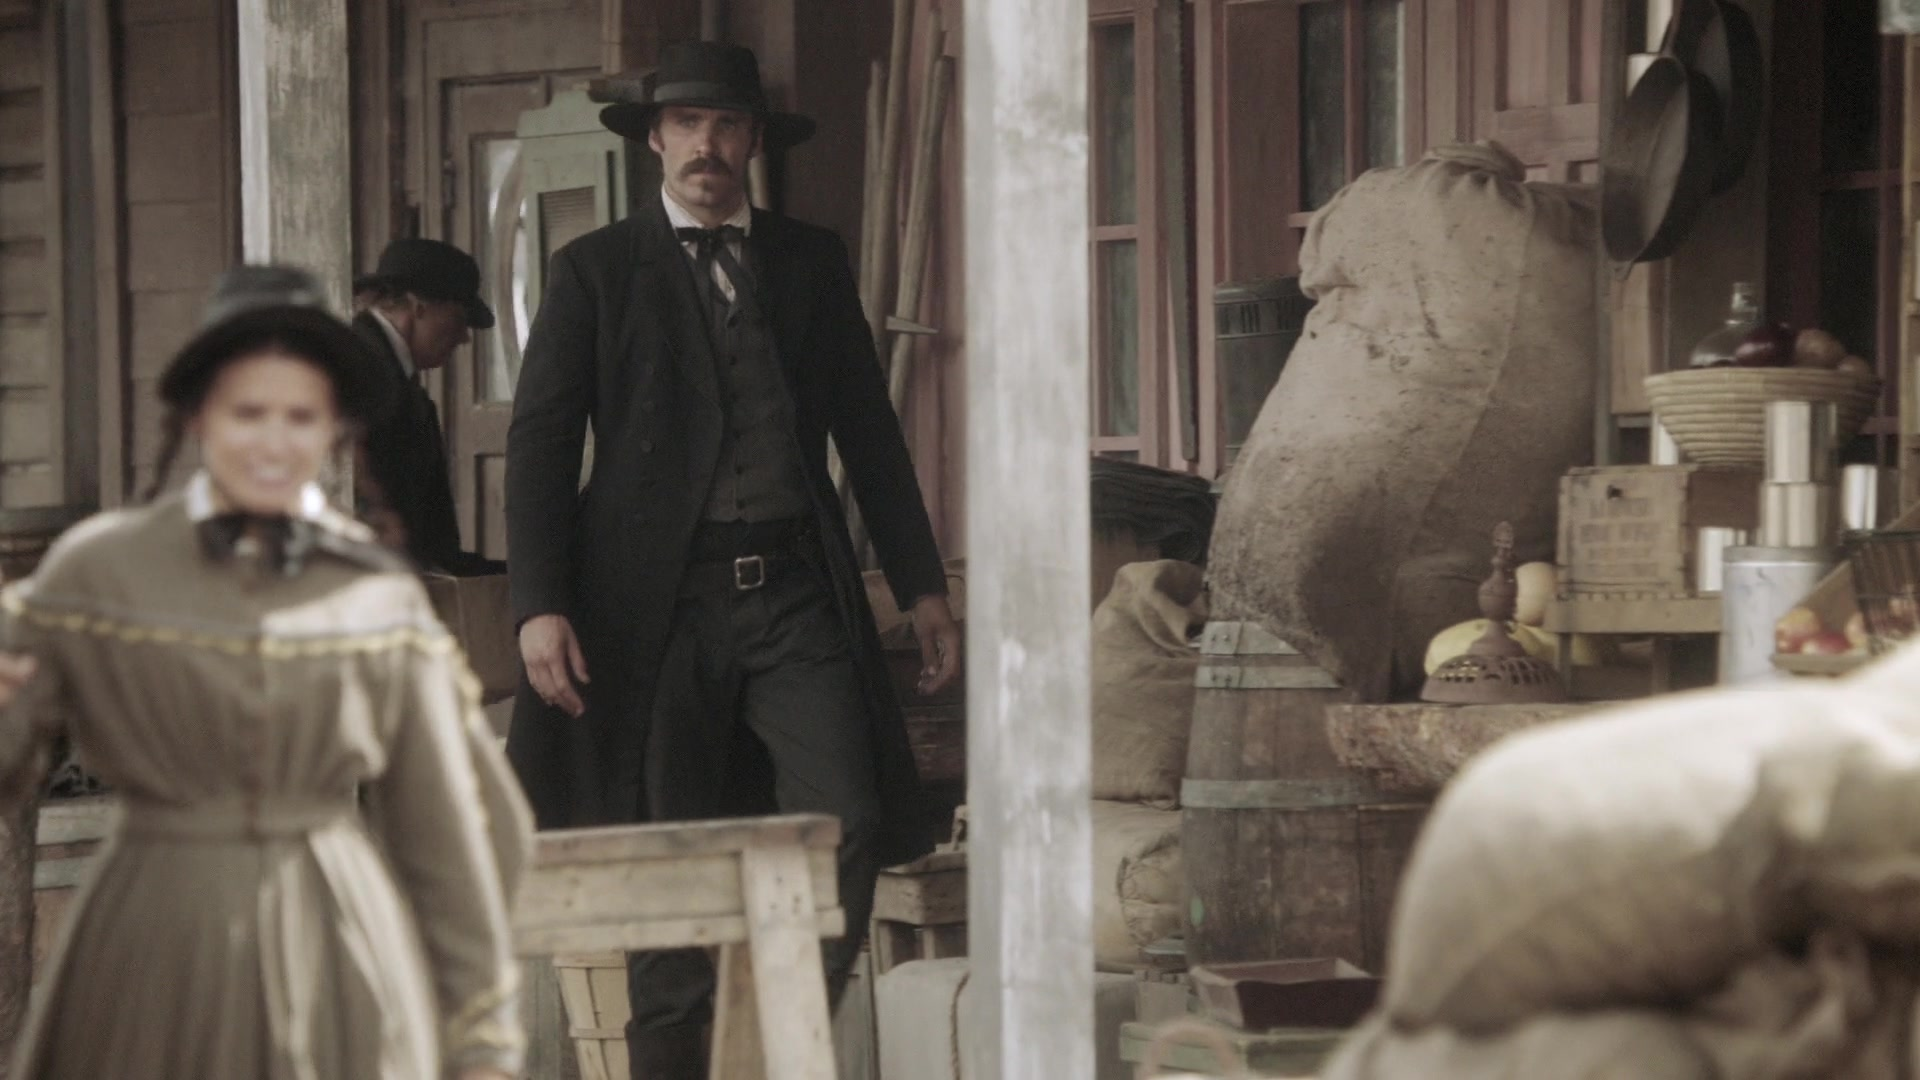 The American West S01E06